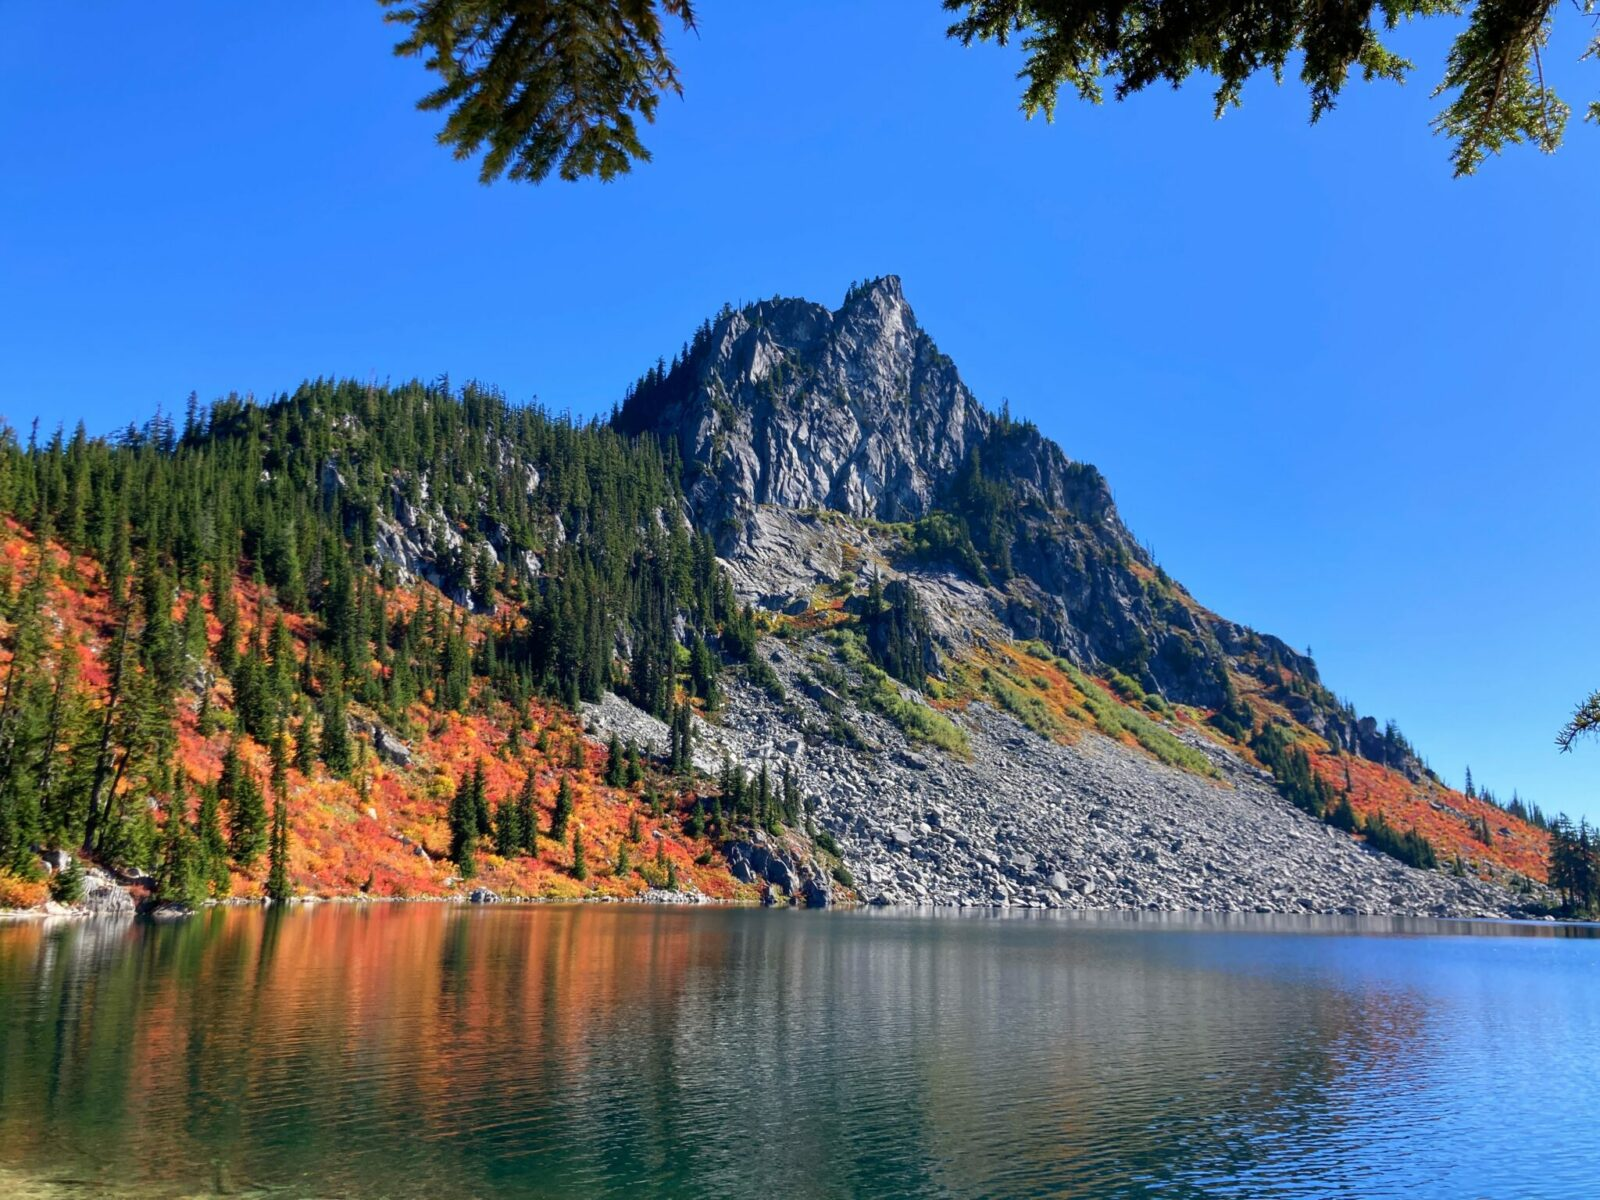 Calm, alpine Lake Valhalla with a rocky mountain on the opposite side of the lake. There are evergreen trees, gray rocks and bright orange and red berry bushes in fall color around the mountain across the lake